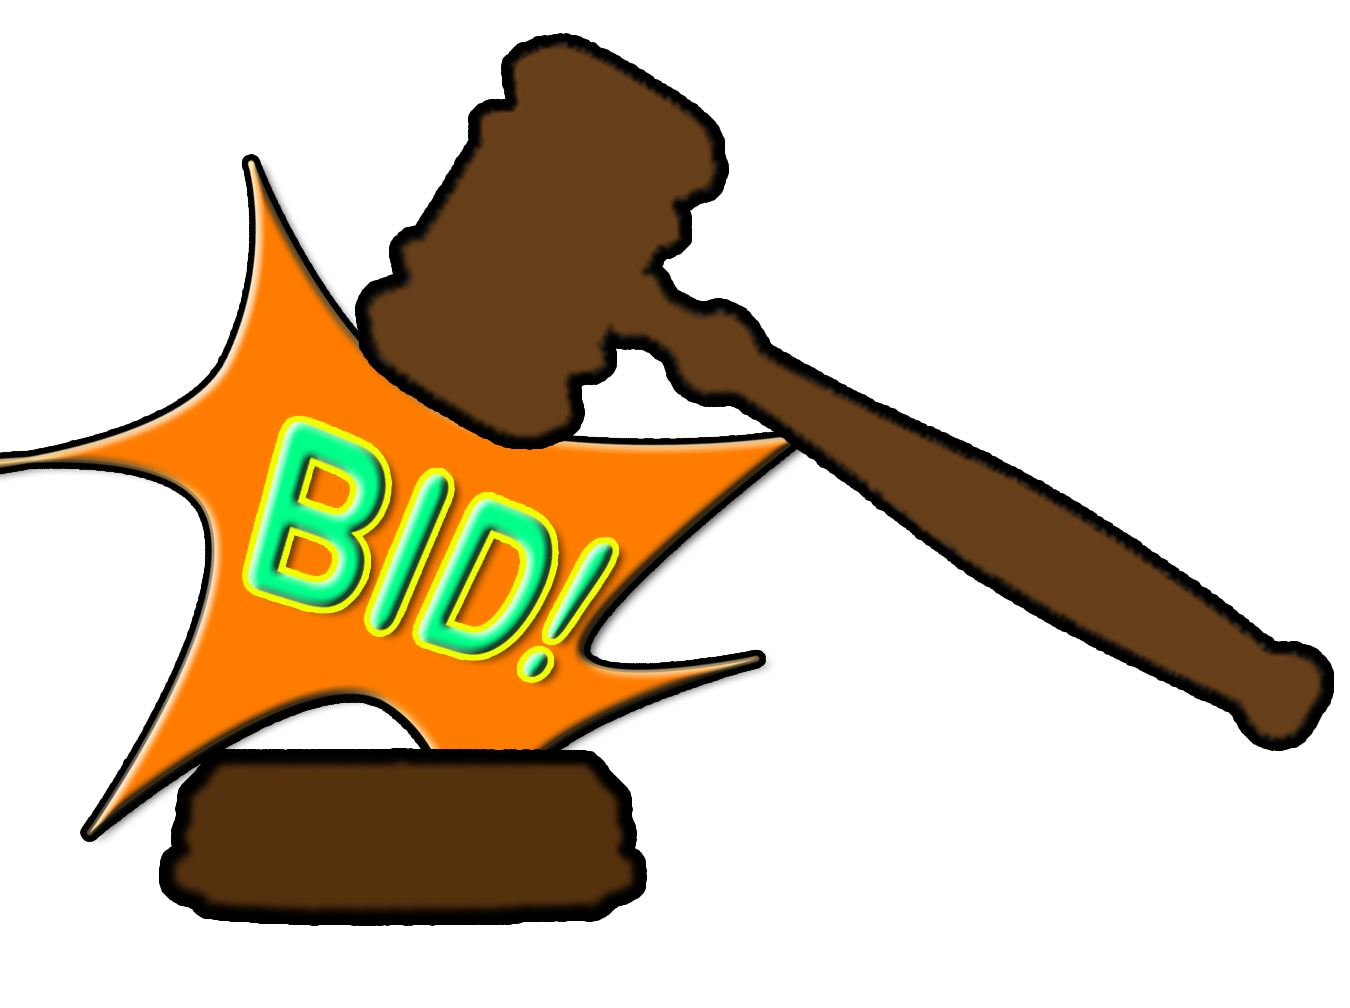 Bid hammer graphic